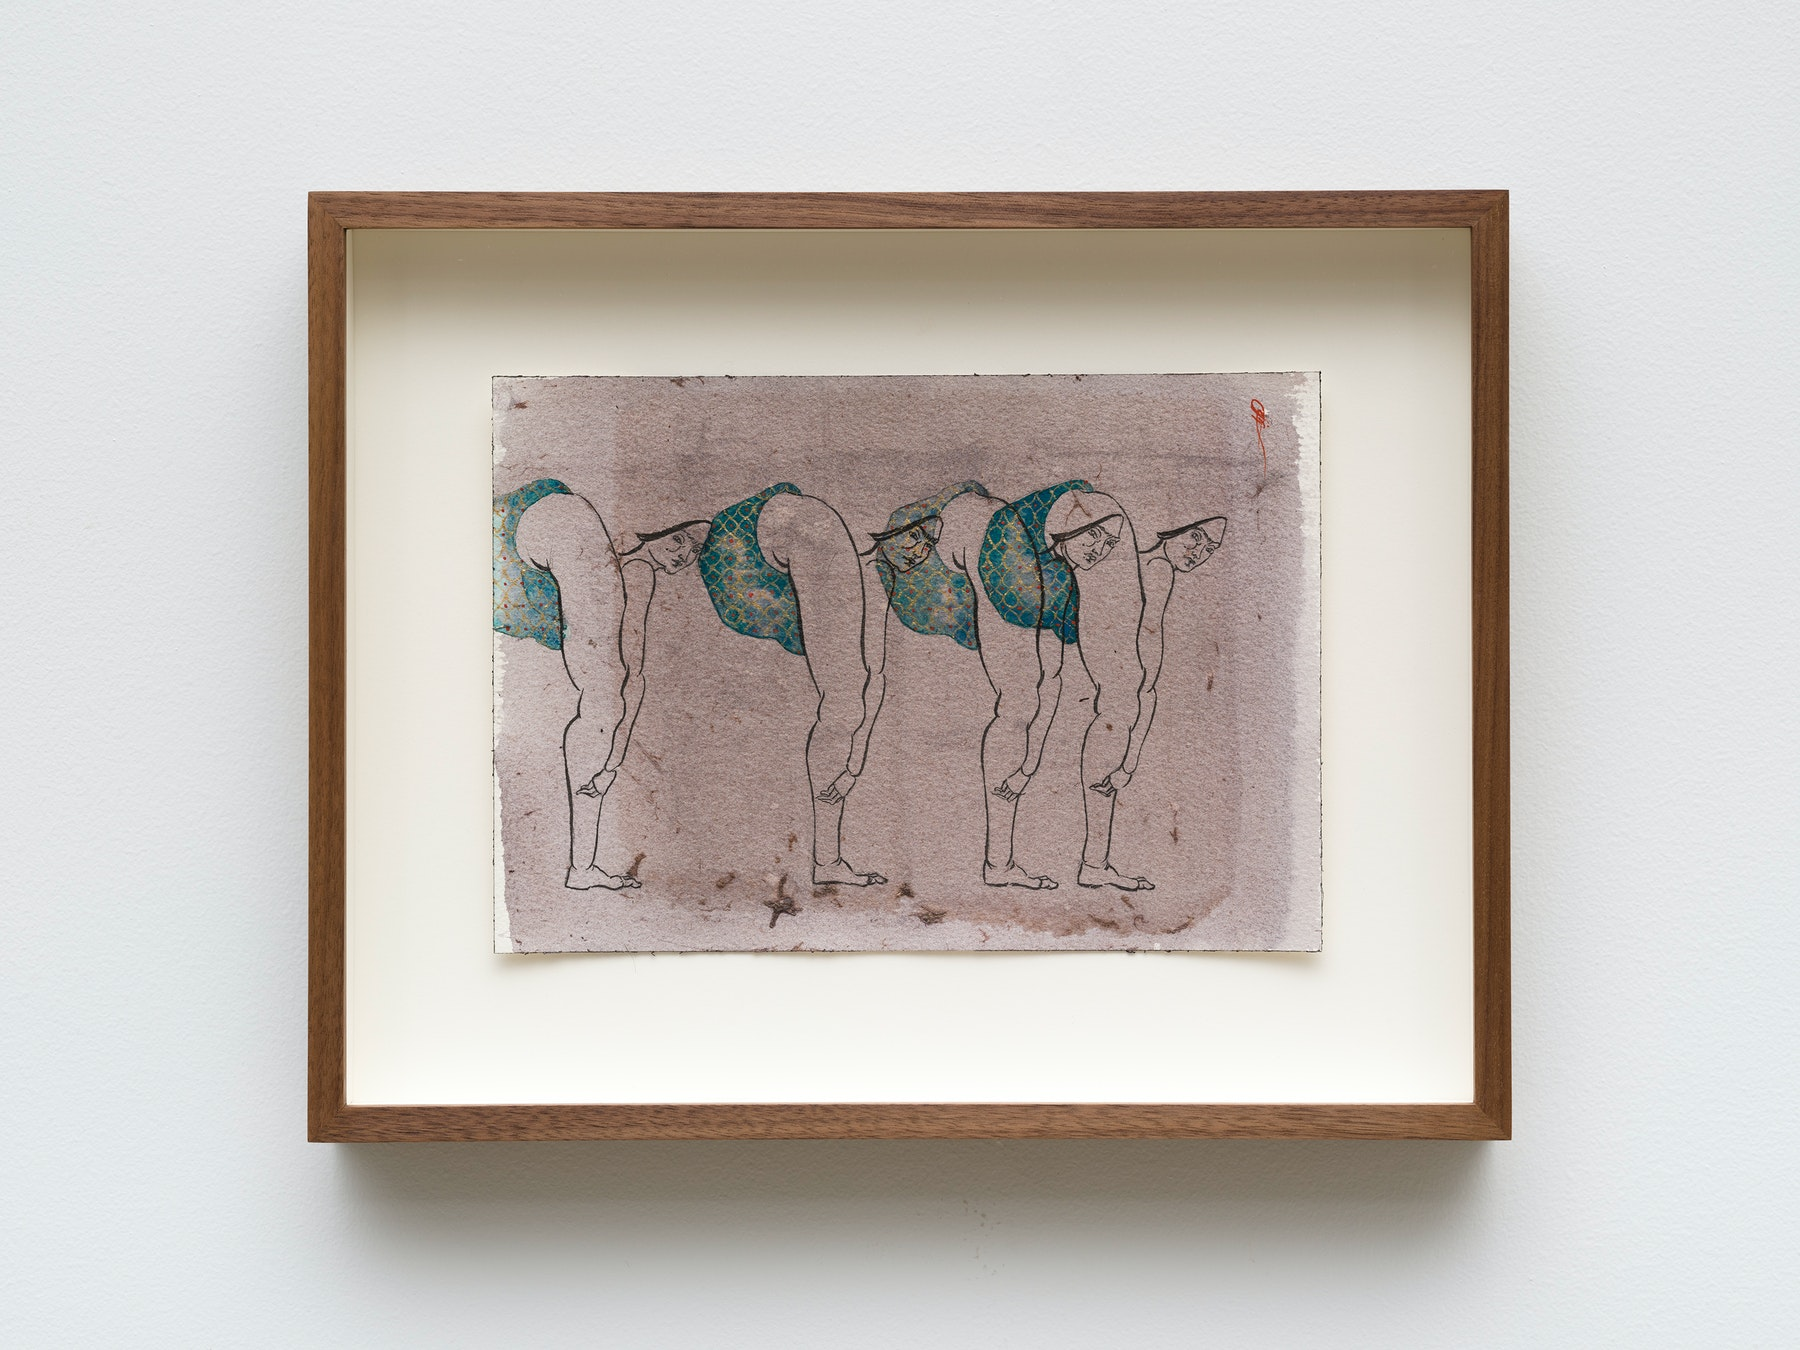 """Hayv Kahraman """"untitled,"""" 2021 Watercolor, gouache and dried pigment on paper 7"""" x 10"""" [HxW] (17.78 x 25.4 cm) paper size, 11 ¹⁄₂"""" x 14 ¹⁄₂"""" x 2"""" [HxWxD] (29.21 x 36.83 x 5.08 cm) framed Inventory #KAR188 Courtesy of the artist and Vielmetter Los Angeles Photo credit: Jeff Mclane"""